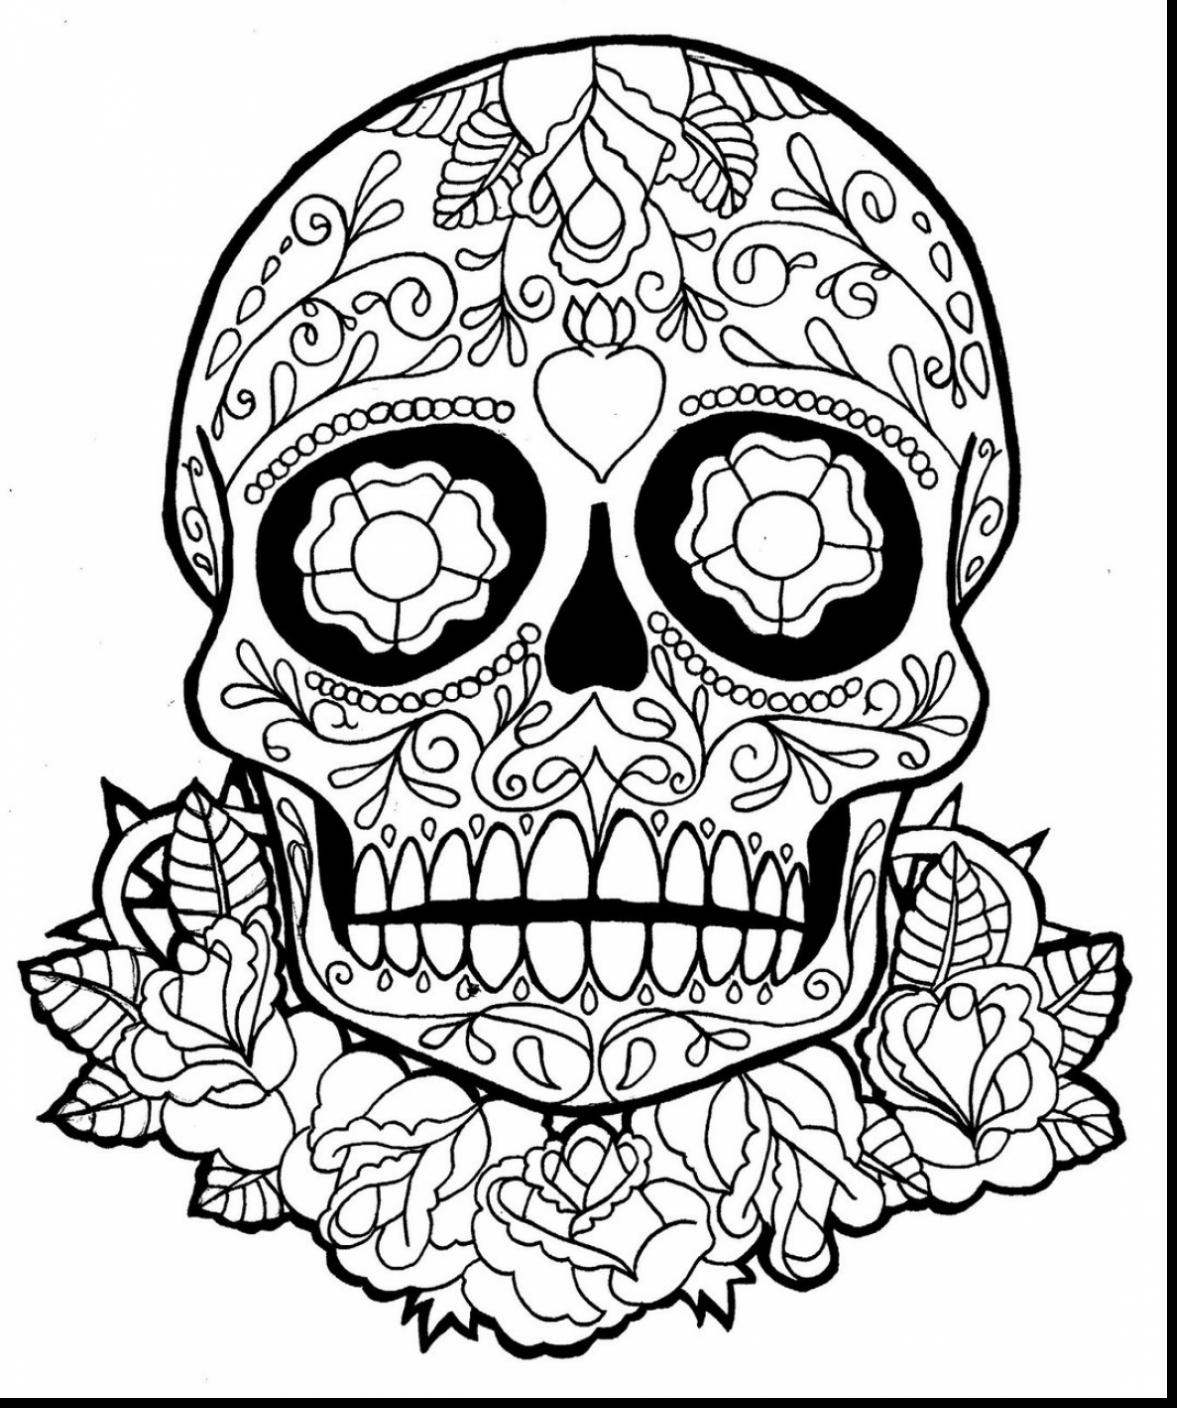 1177x1408 New Fantastic Dia De Los Muertos Skull Coloring Page With Day